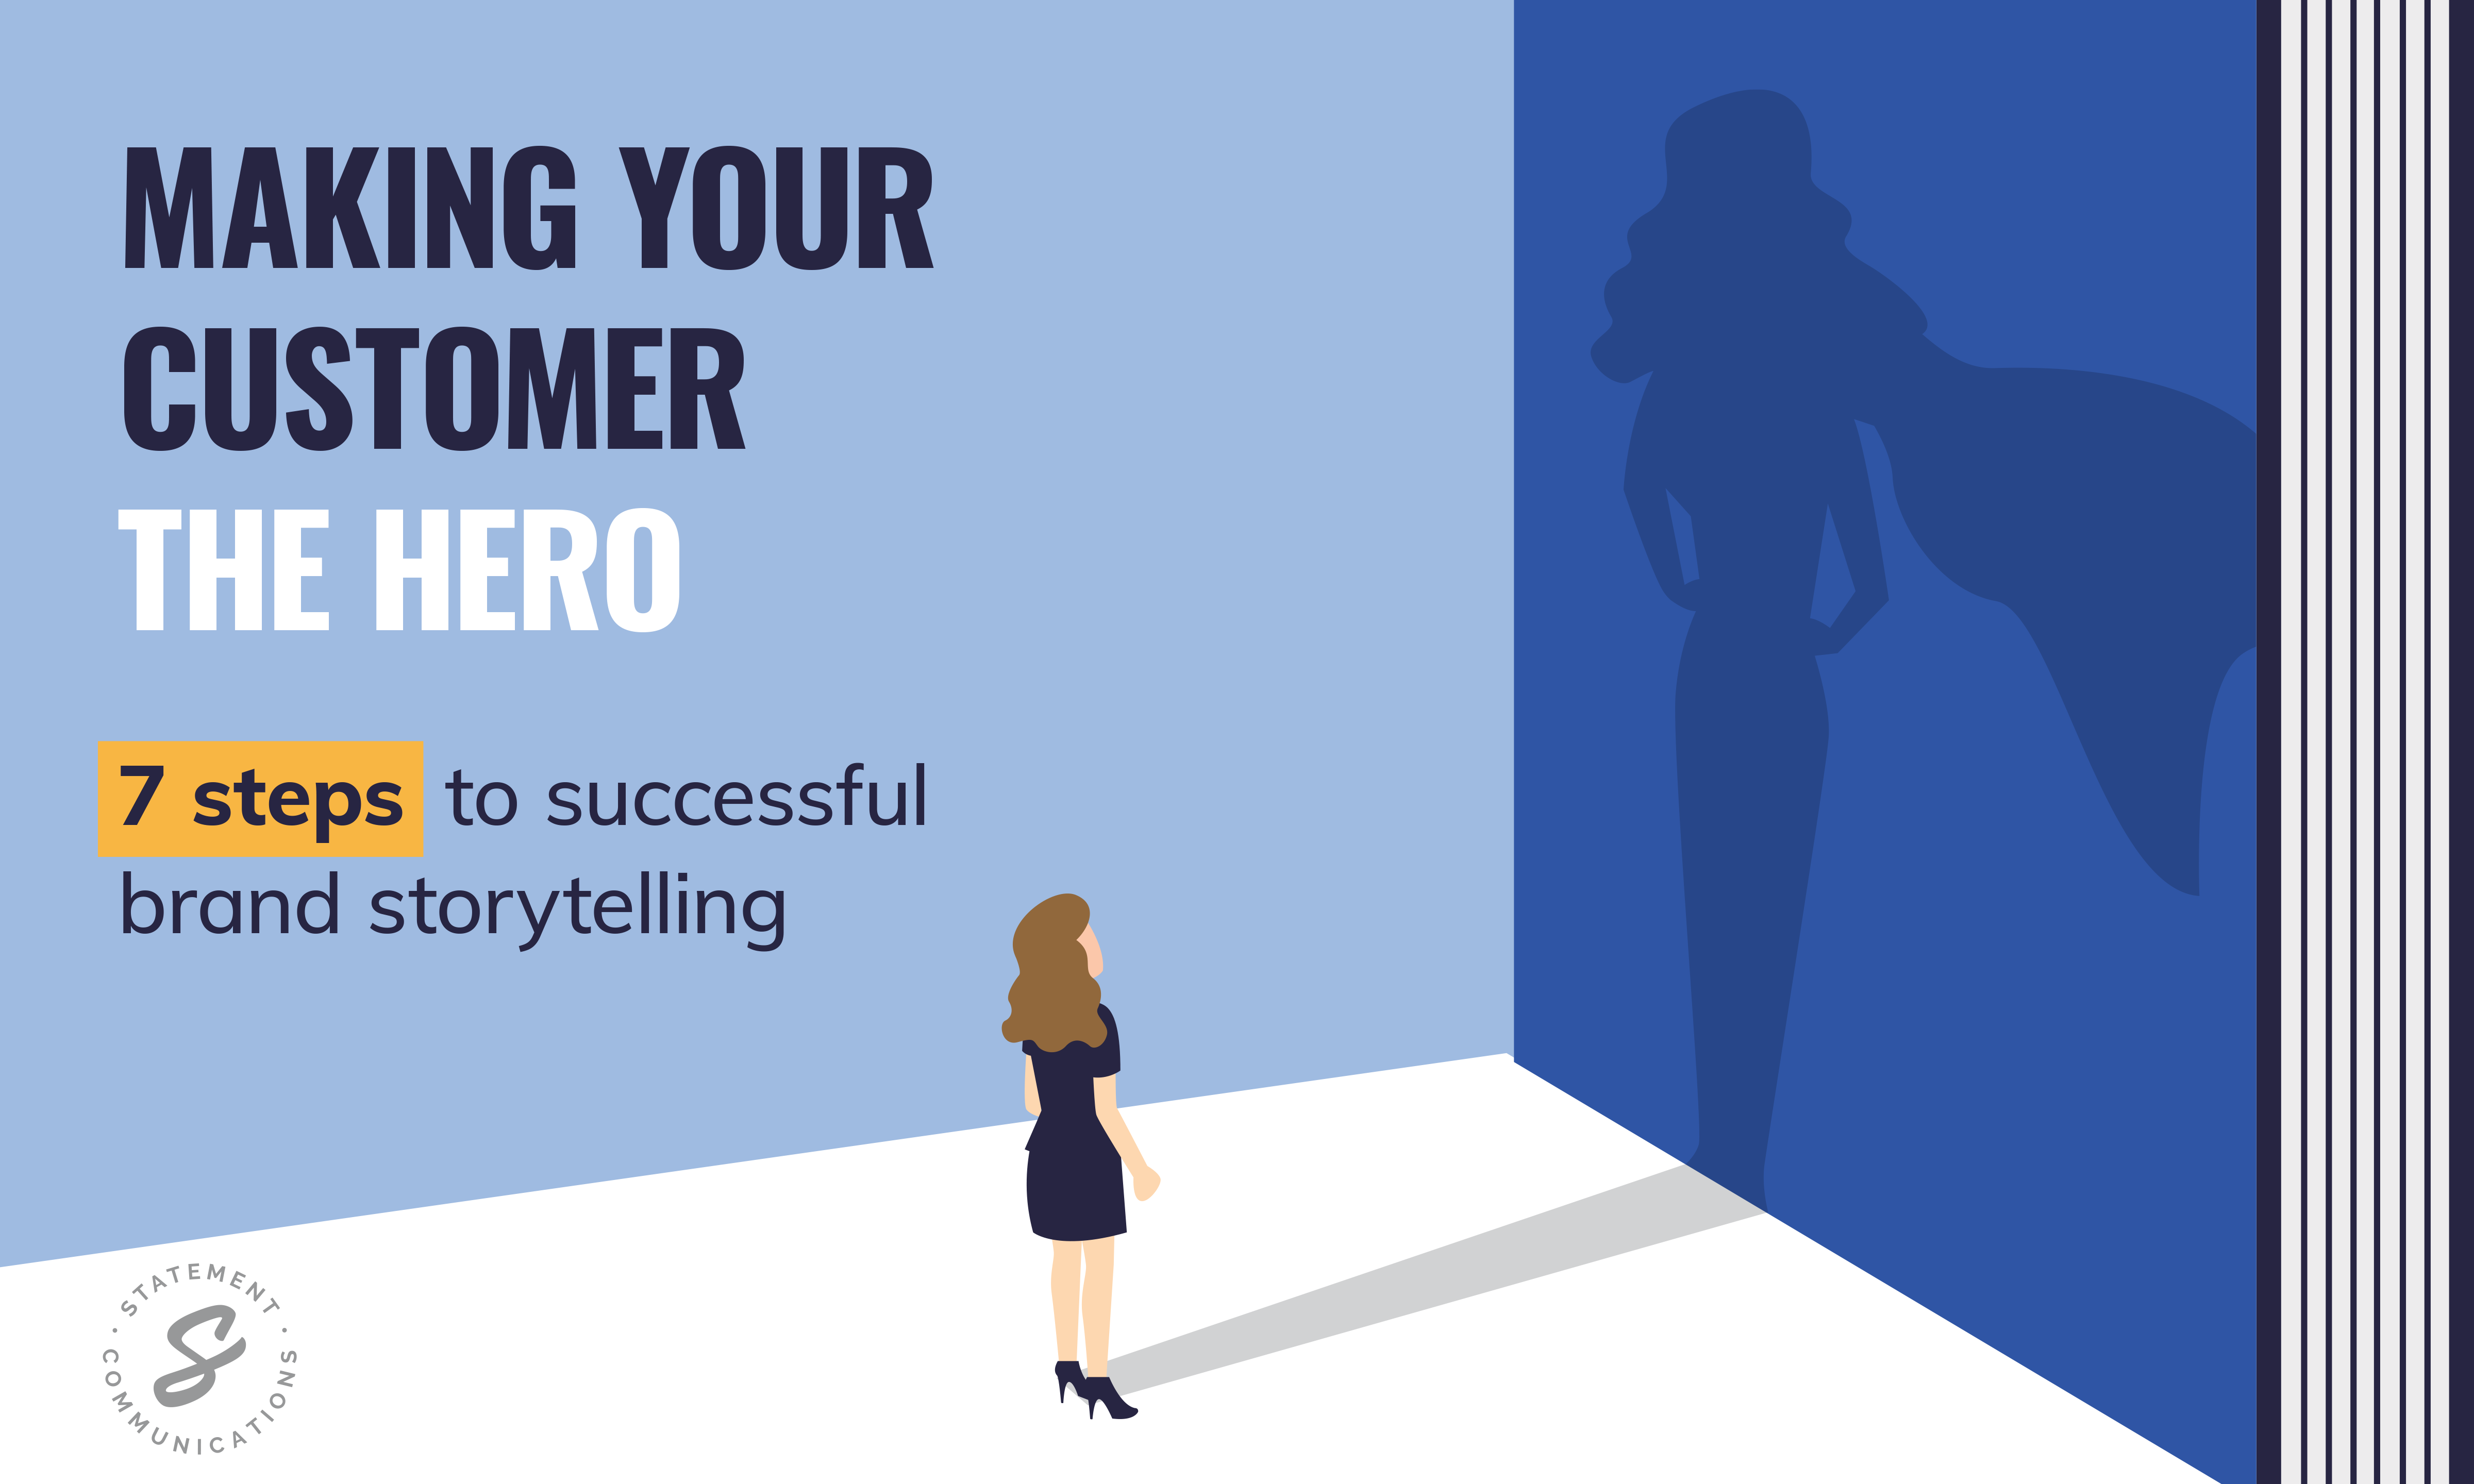 Making your customer the hero - 7 steps to successful brand storystelling